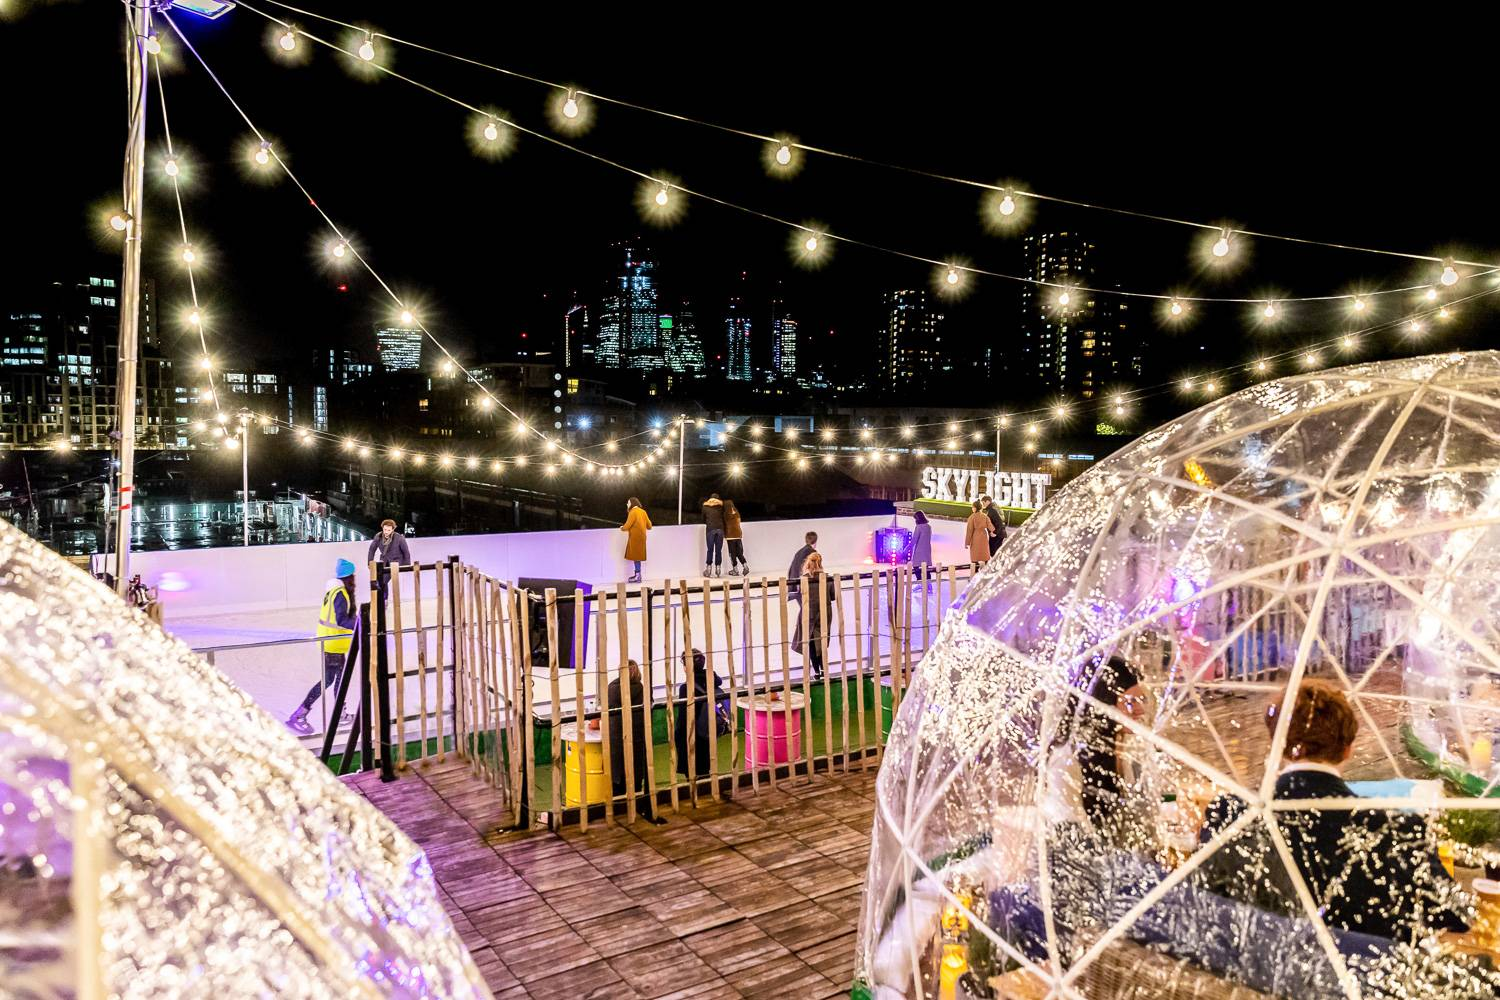 Image of igloors and rooftop ice skating rink at London's Skylight Rooftop Bar.